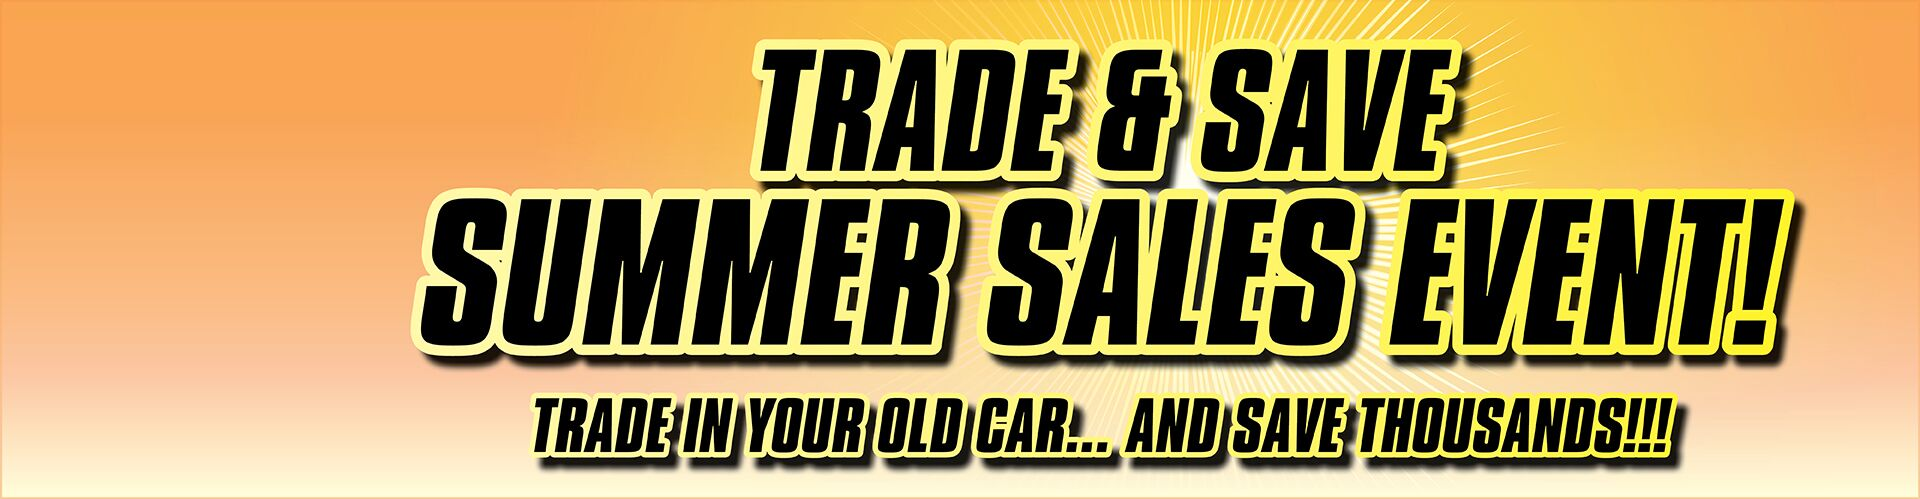 Summer Sales Event! - Trade In Your Old Car!